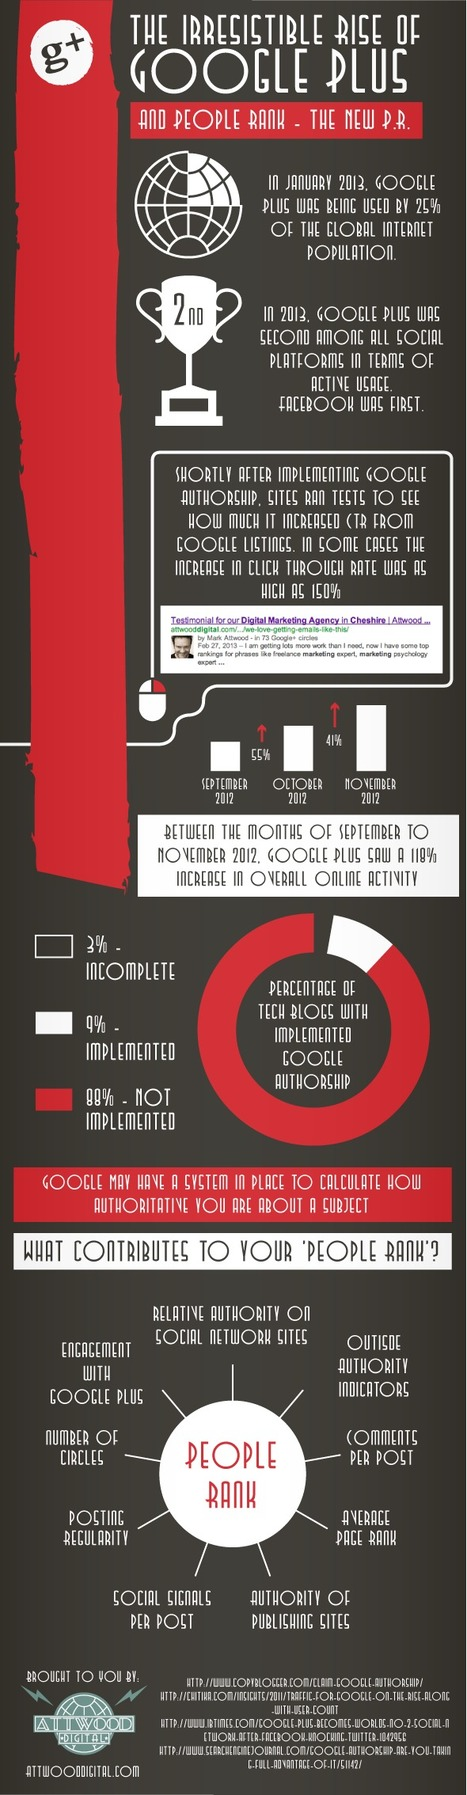 The Irresistible Rise Of Google Plus (Infographic) | Wiki_Universe | Scoop.it